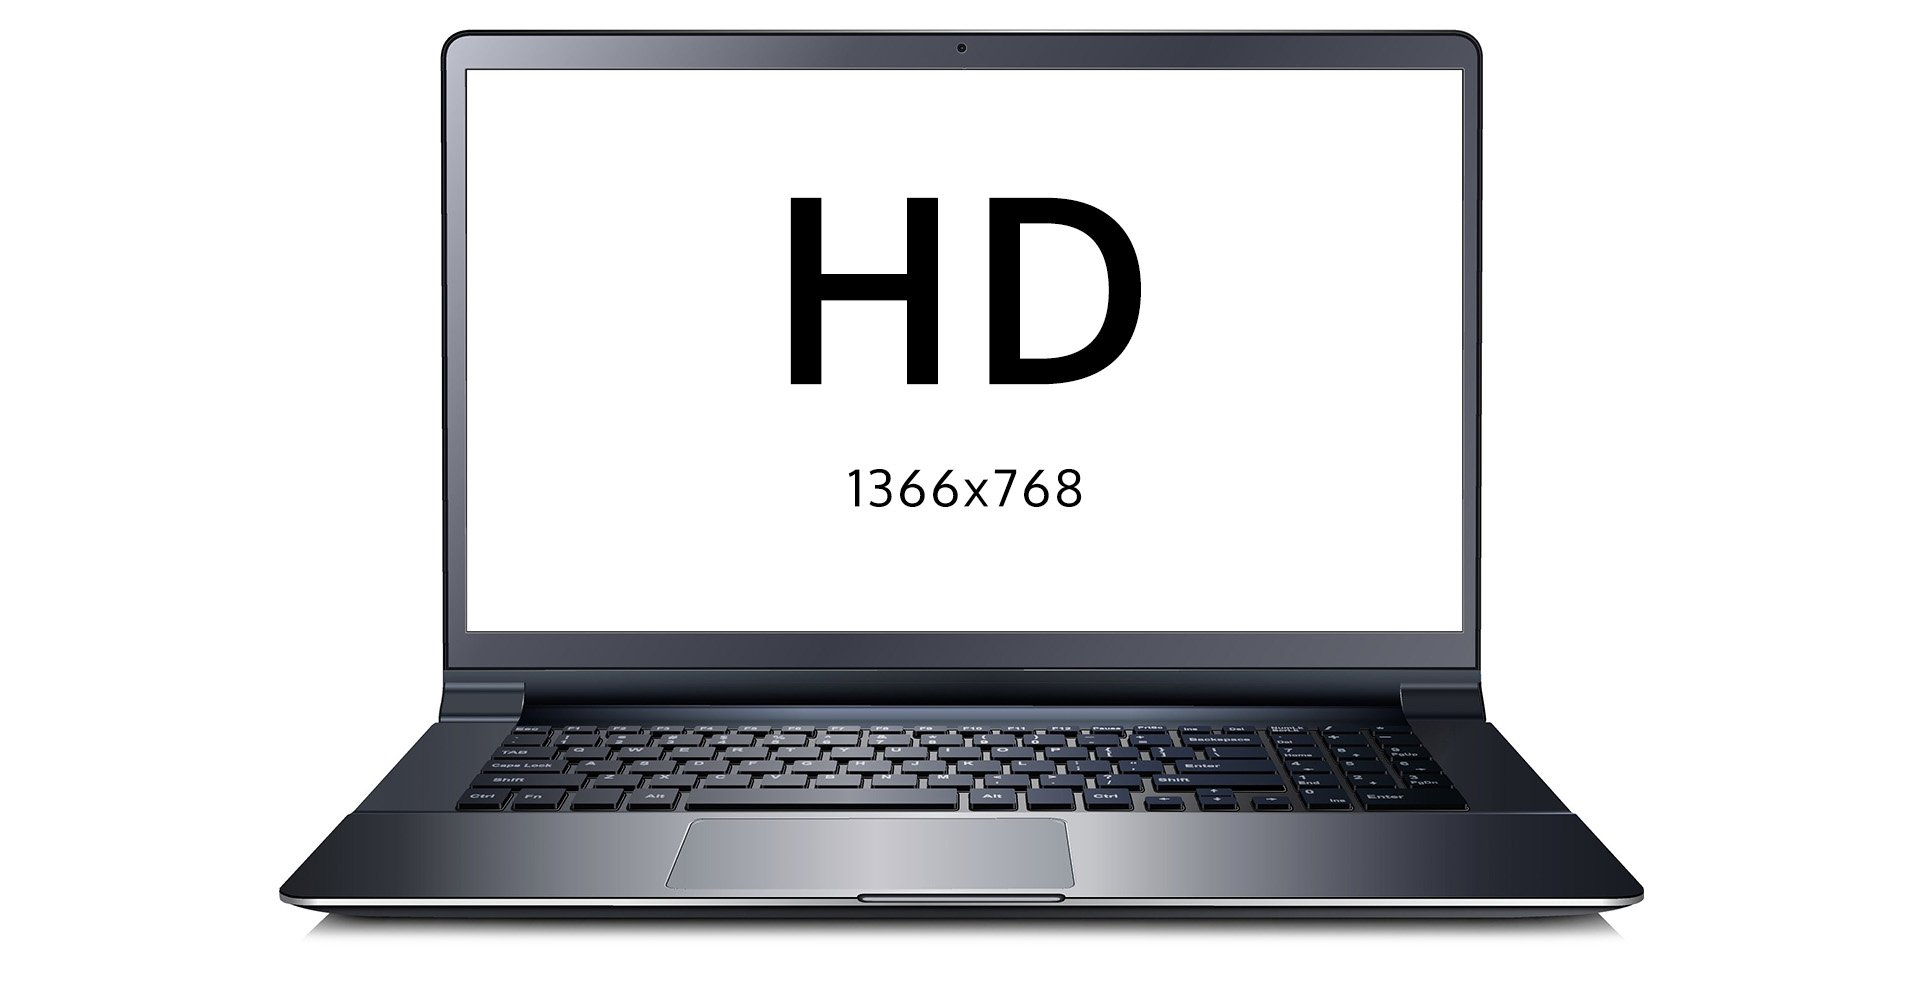 Dell Latitude 14 3400 i3-8145U 4GB 128GB Win10Pro                             HD 1366x768 resolutsioon